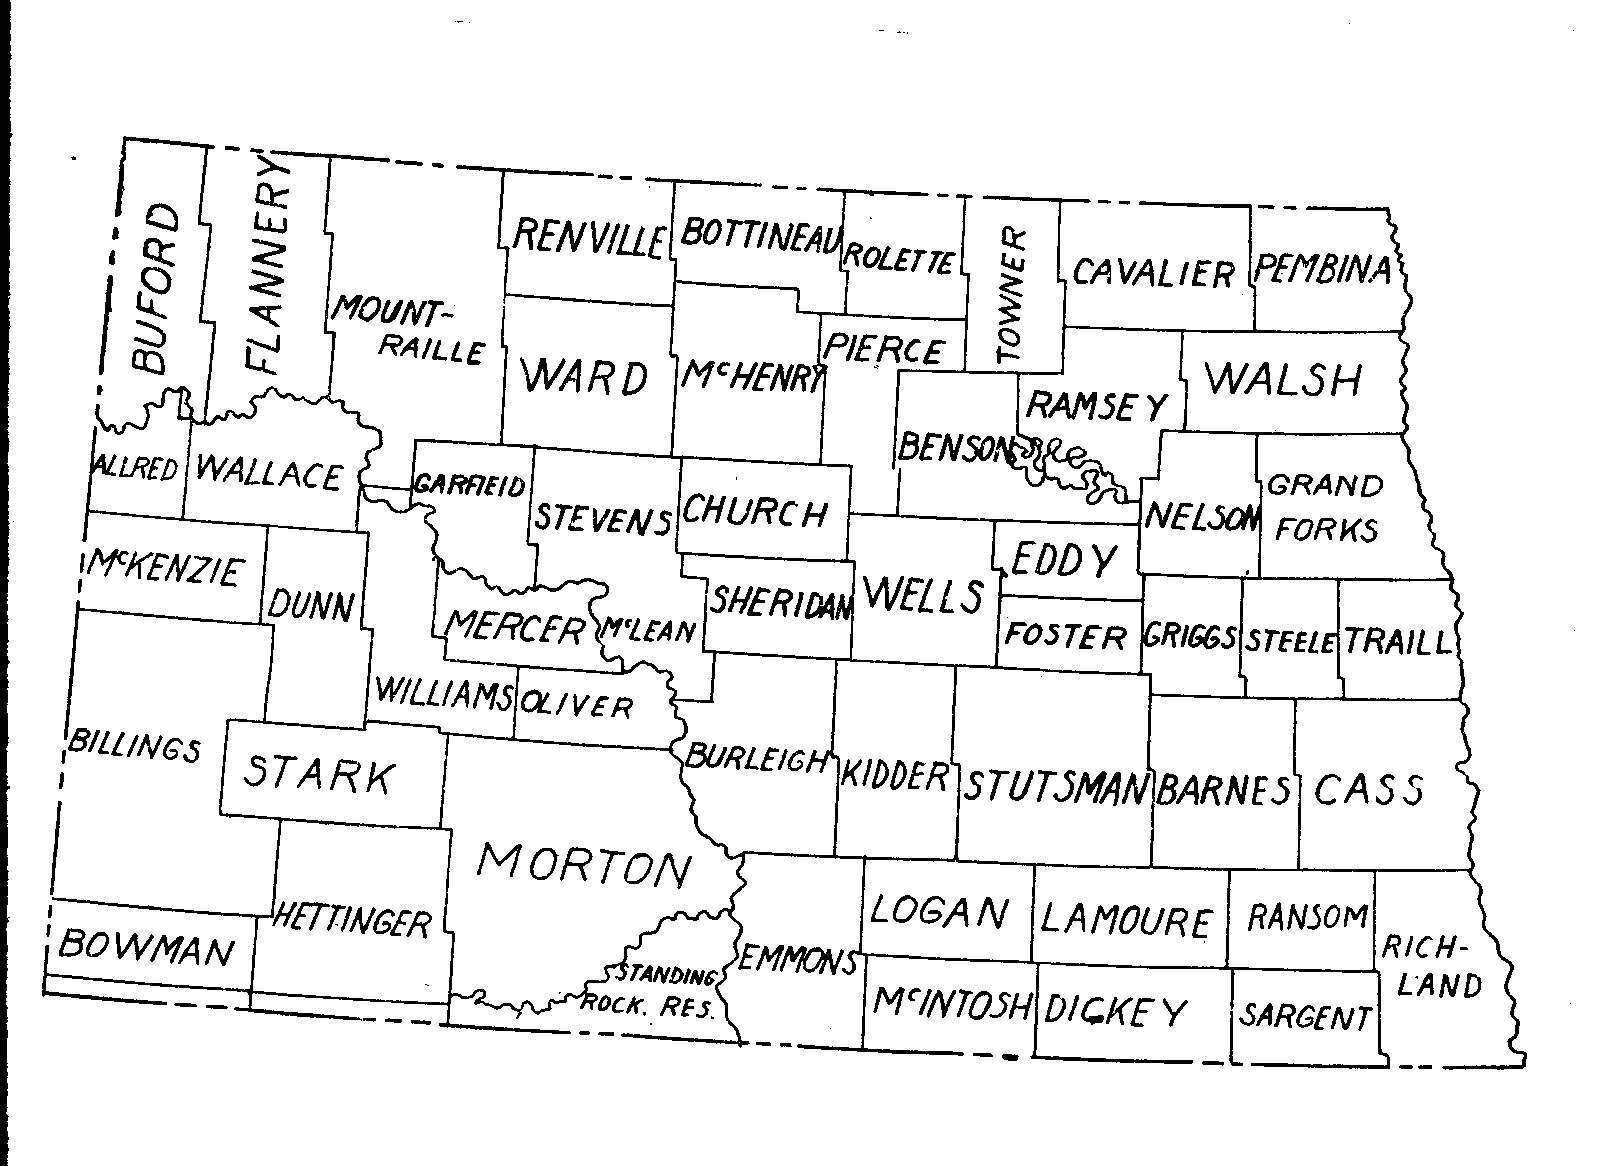 This is the state of North Dakota in 1889. The counties are somewhat different from what we see on today's map.